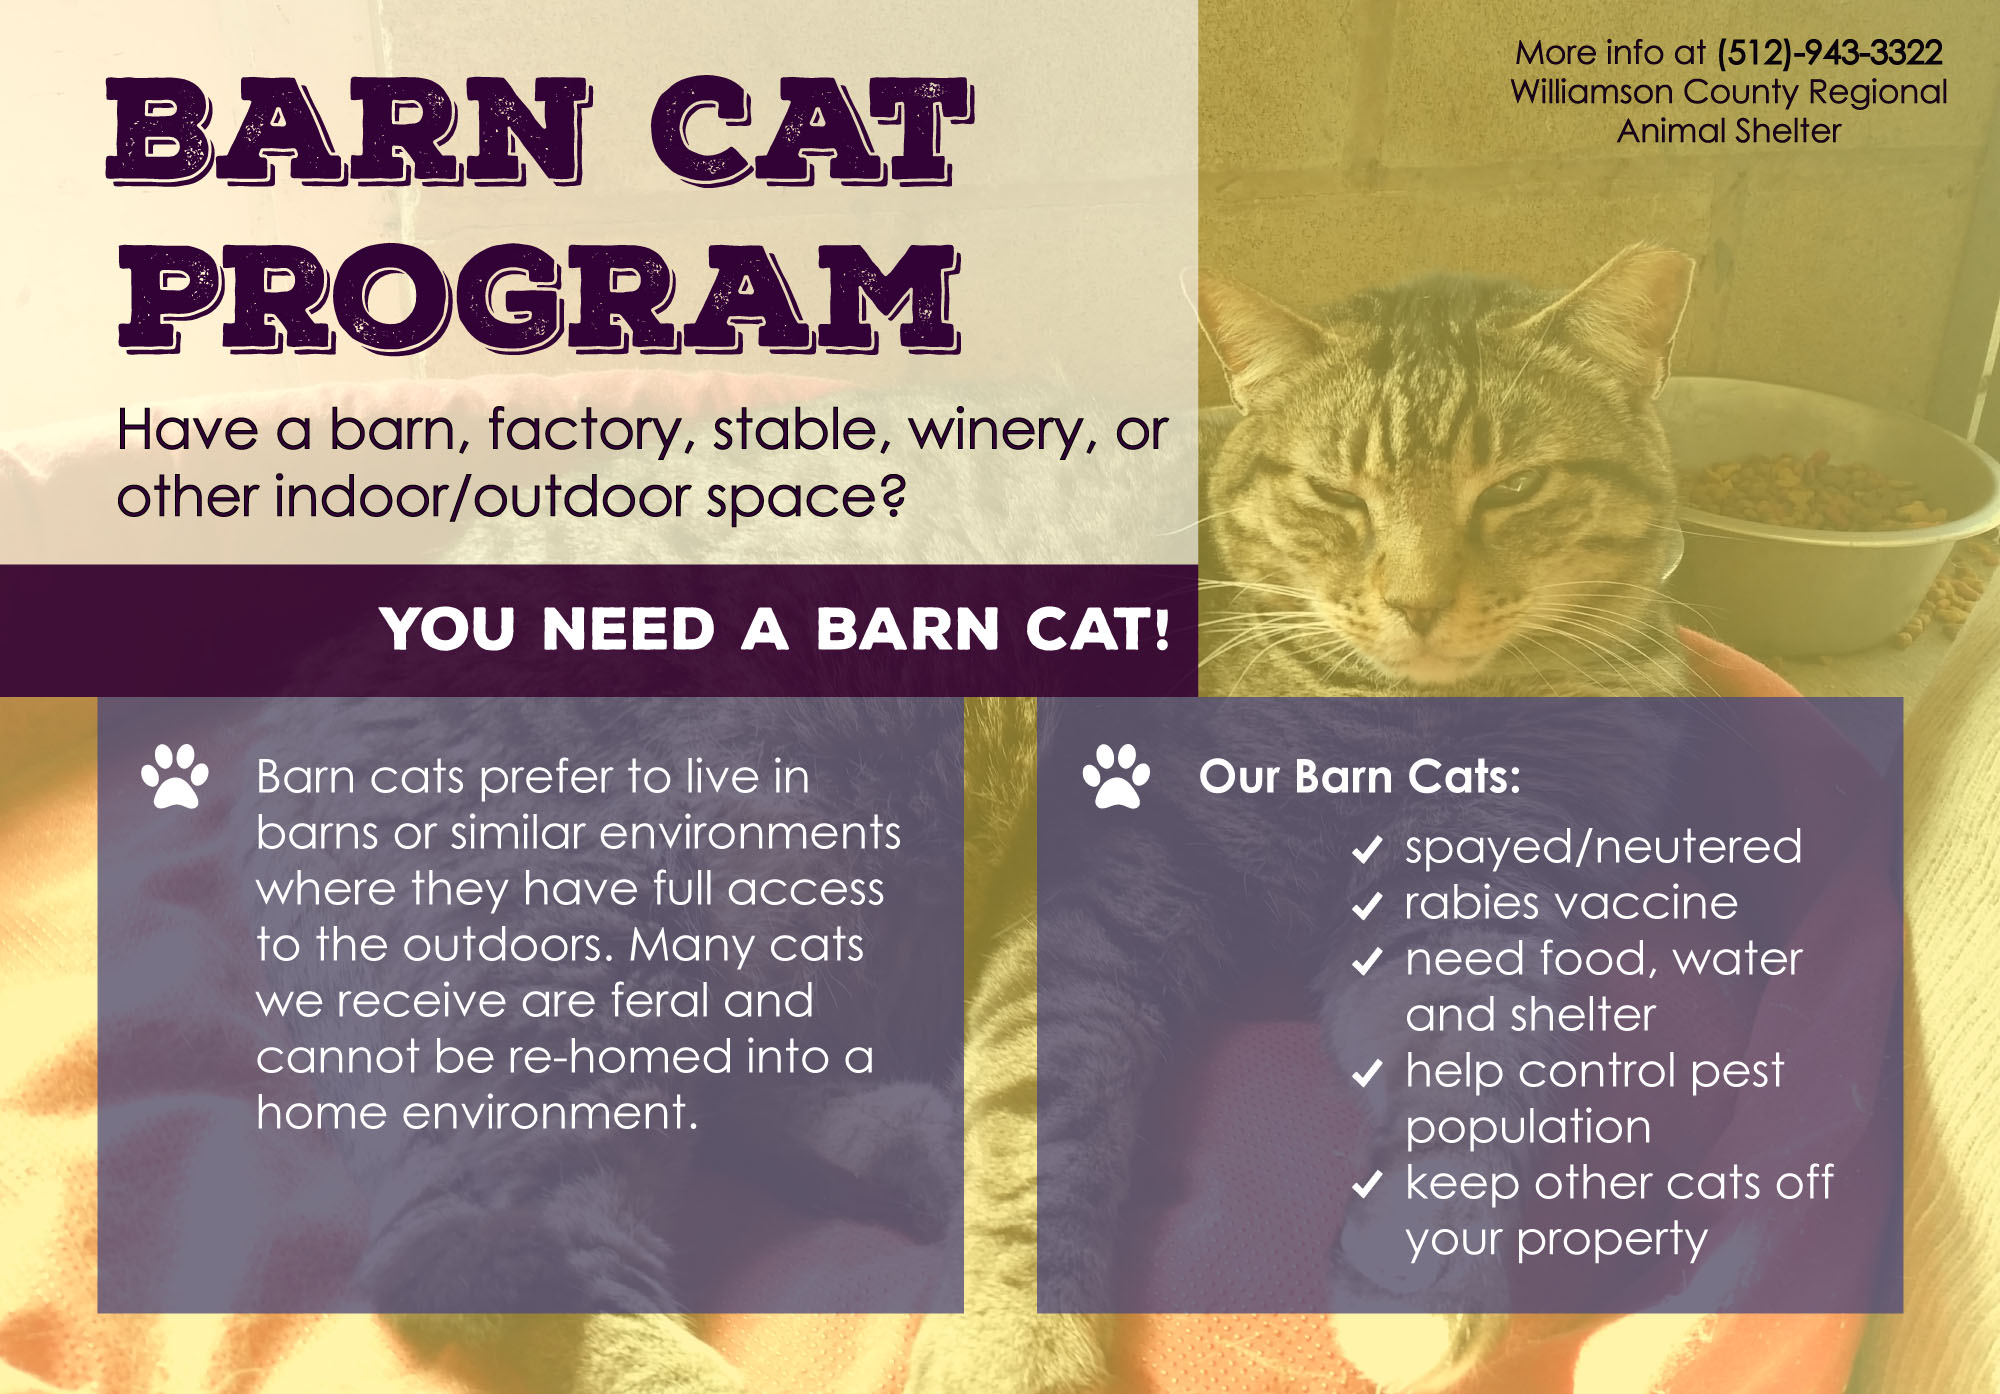 Barn Cat ProgramHave a barn, factory, stable, winery or other indoor/outdoor space? You need a barn cat! Barn cats prefer to live in barns or similar environments where they have full access to the outdoors. Many cats we receive are feral and cannot be re-homed into a home environment. More info at 512-943-3322 Williamson County Animal Shelter